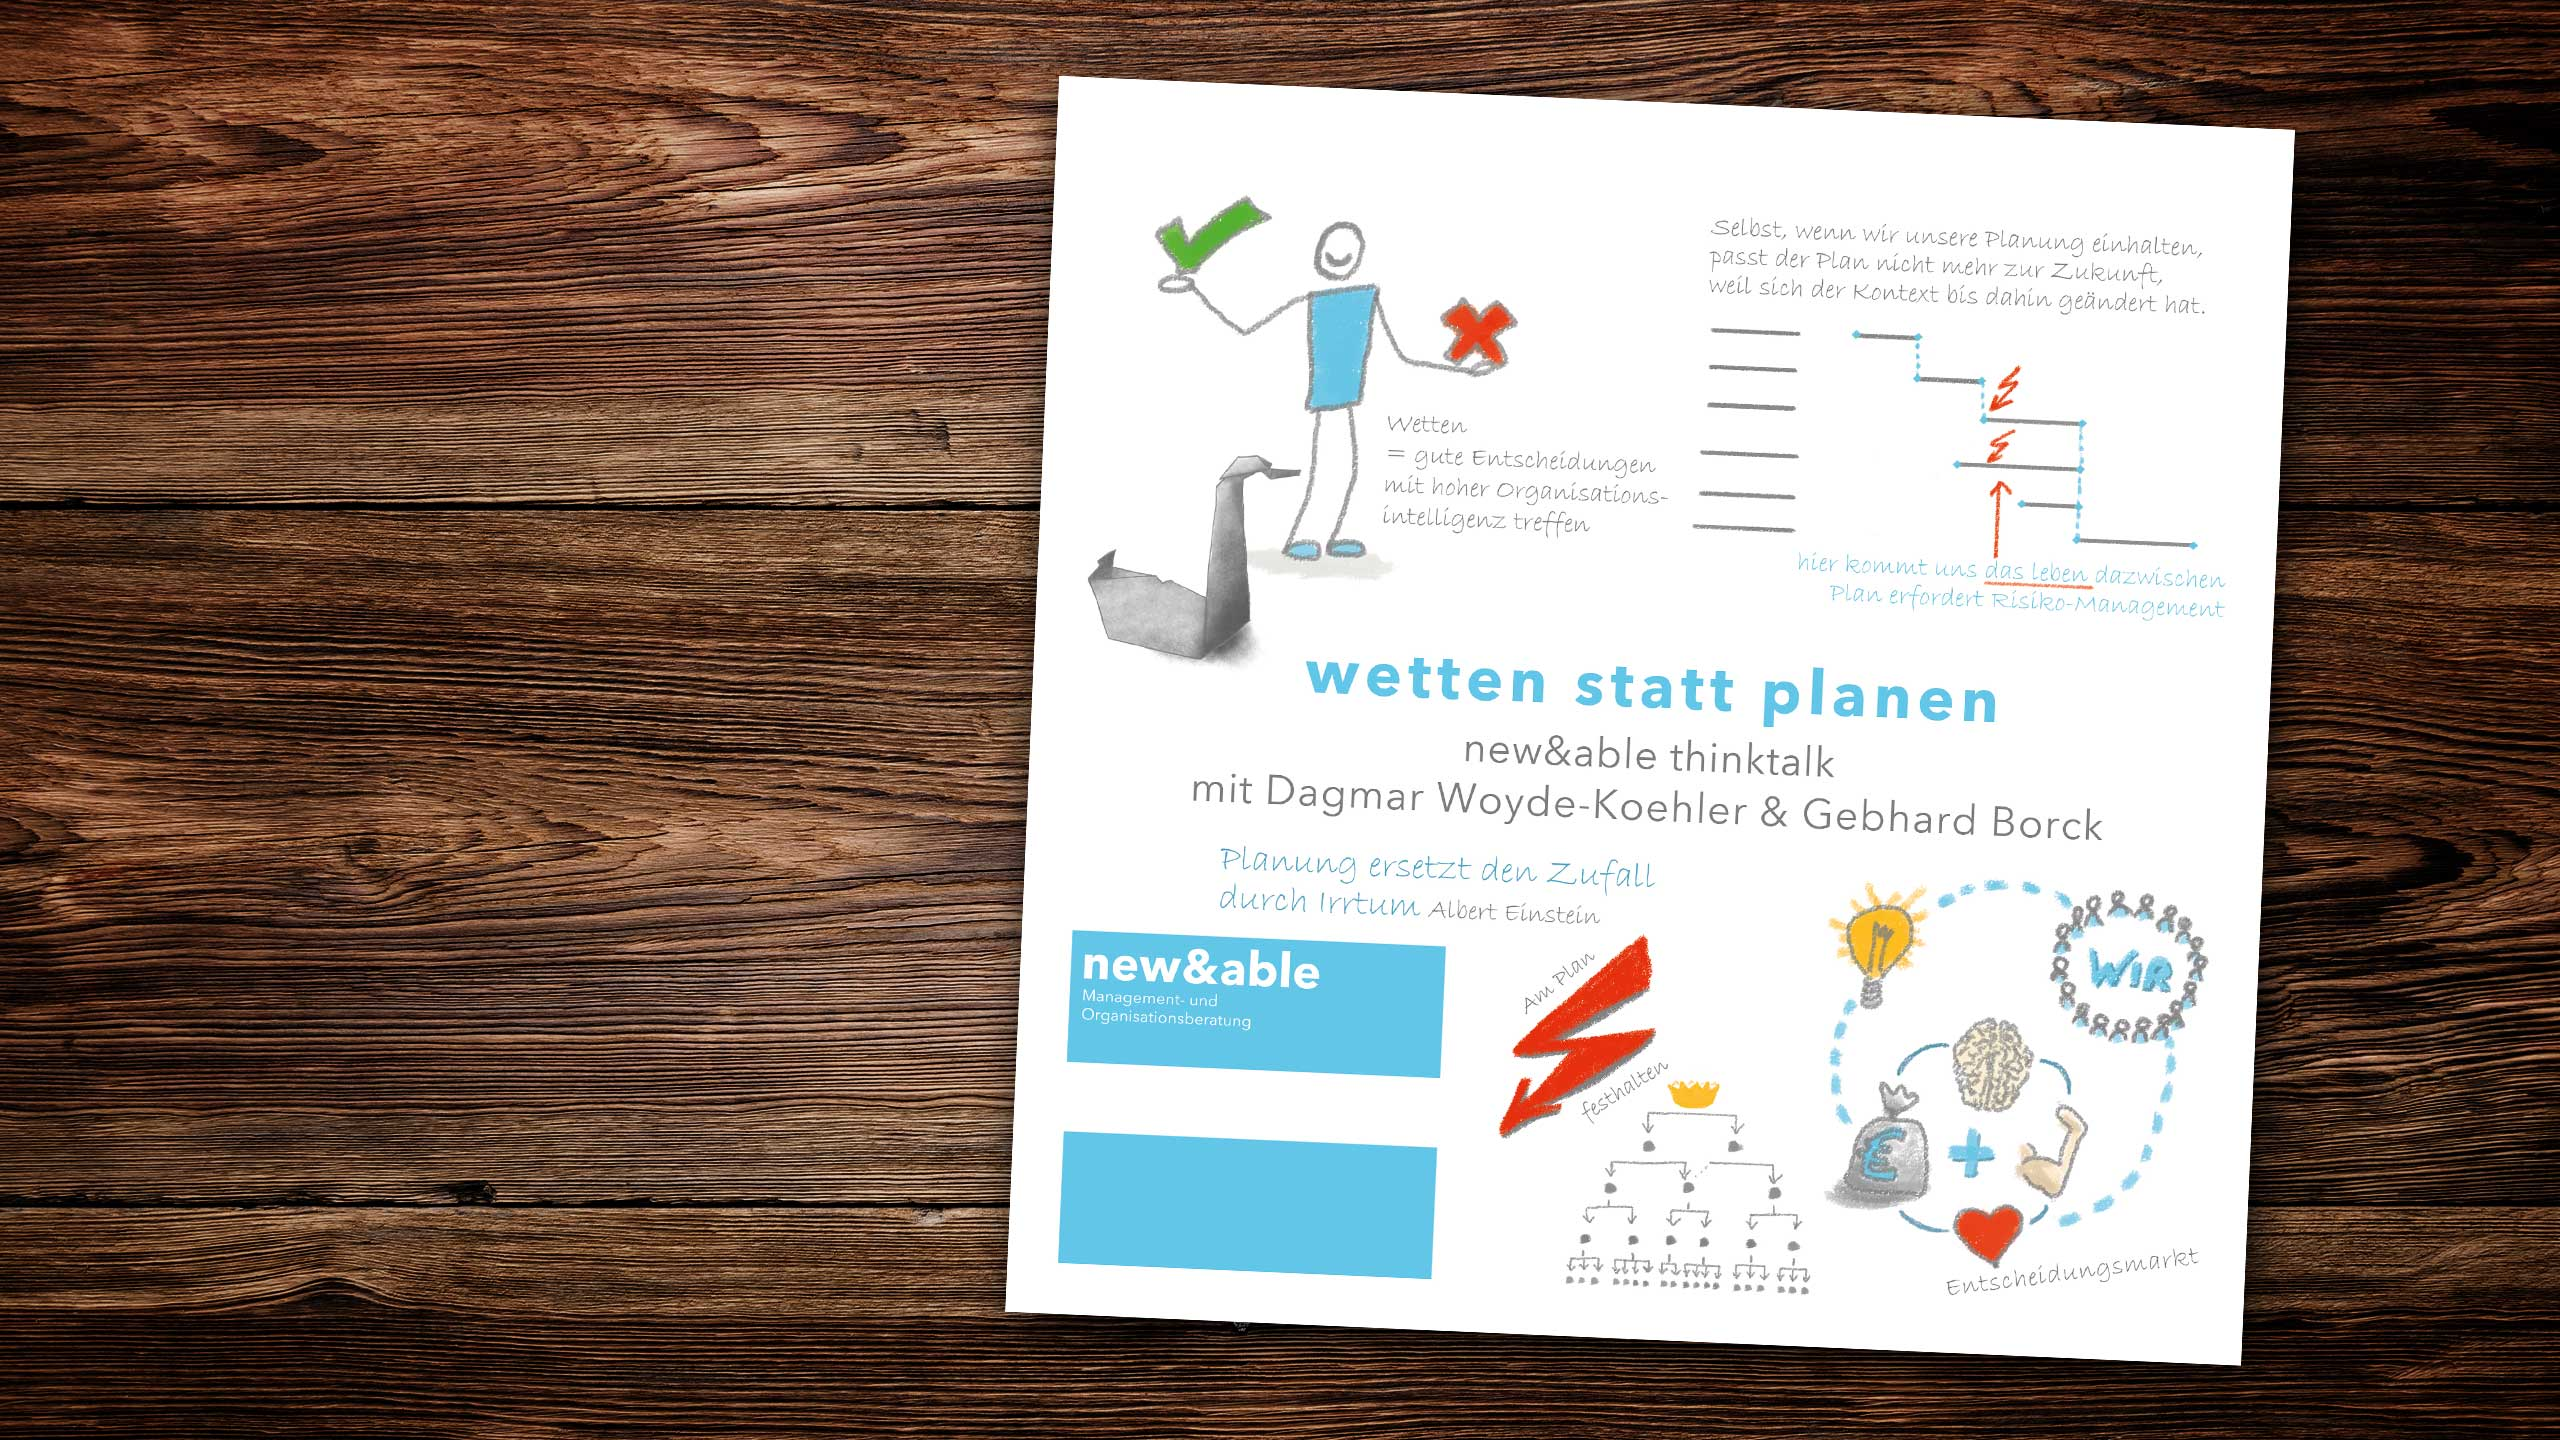 new&able thinktalk: Wetten statt Planen